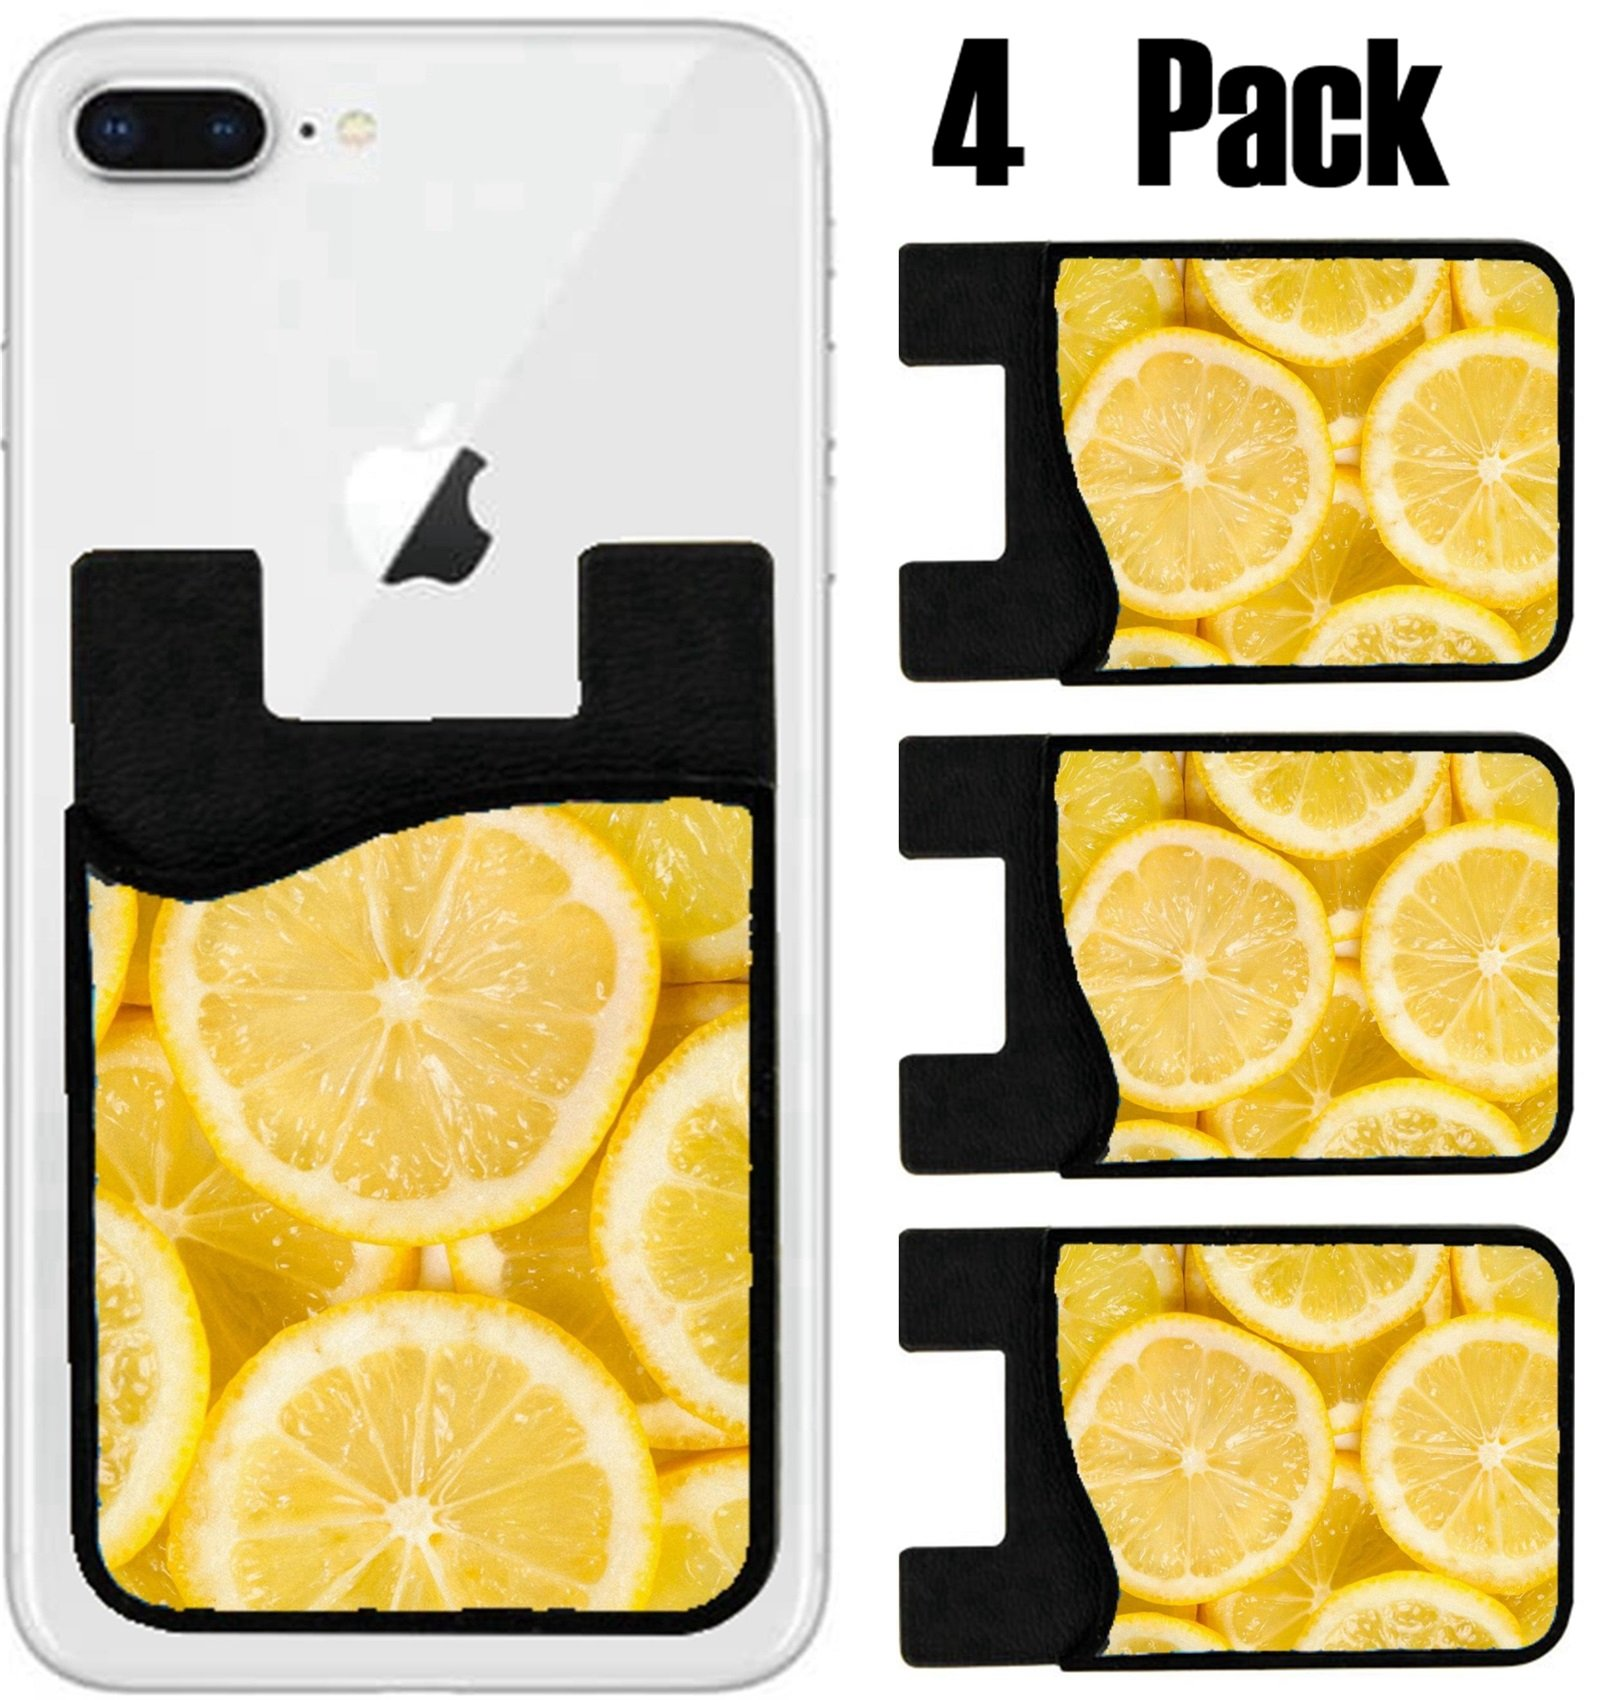 MSD Phone Card holder, sleeve/wallet for iPhone Samsung Android and all smartphones with removable microfiber screen cleaner Silicone card Caddy(4 Pack) IMAGE ID 36577258 detail of lemon slices image